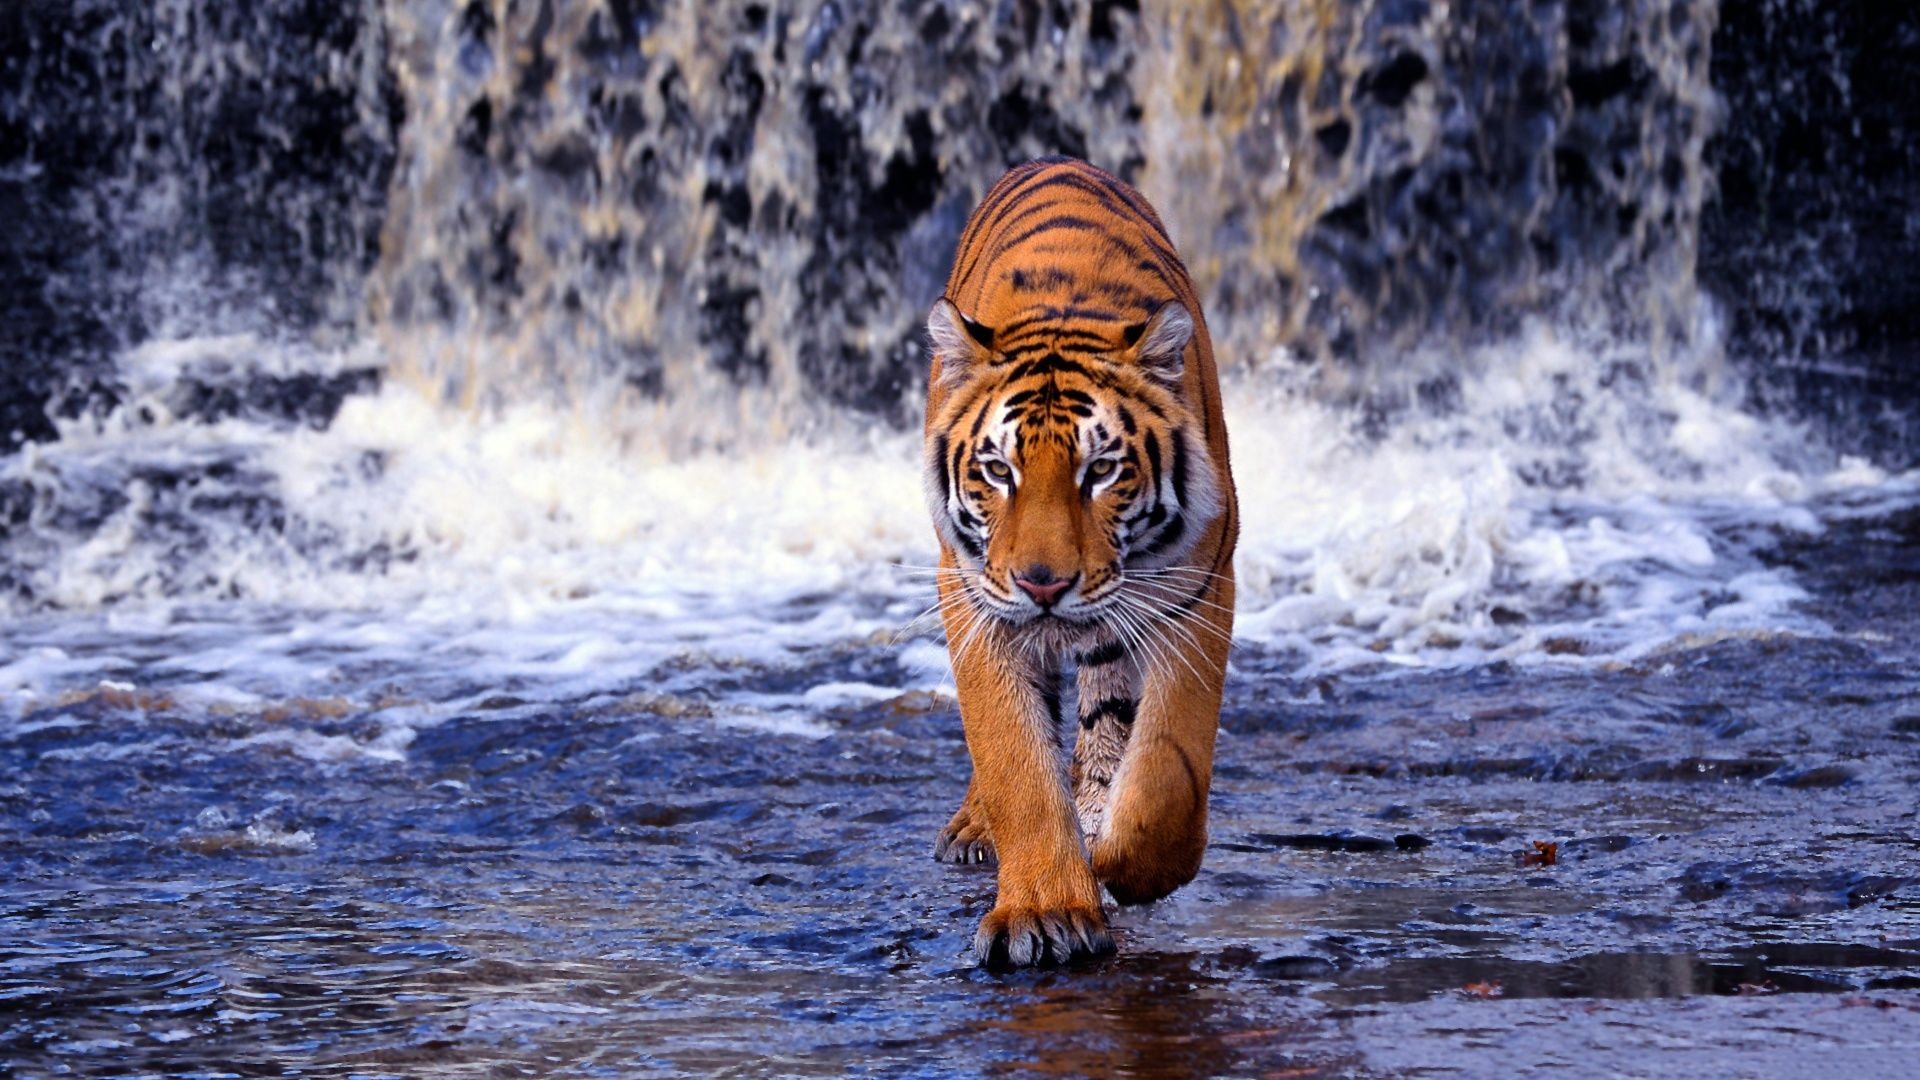 1920x1080 bengal tiger wallpaper | epic car wallpapers | pinterest